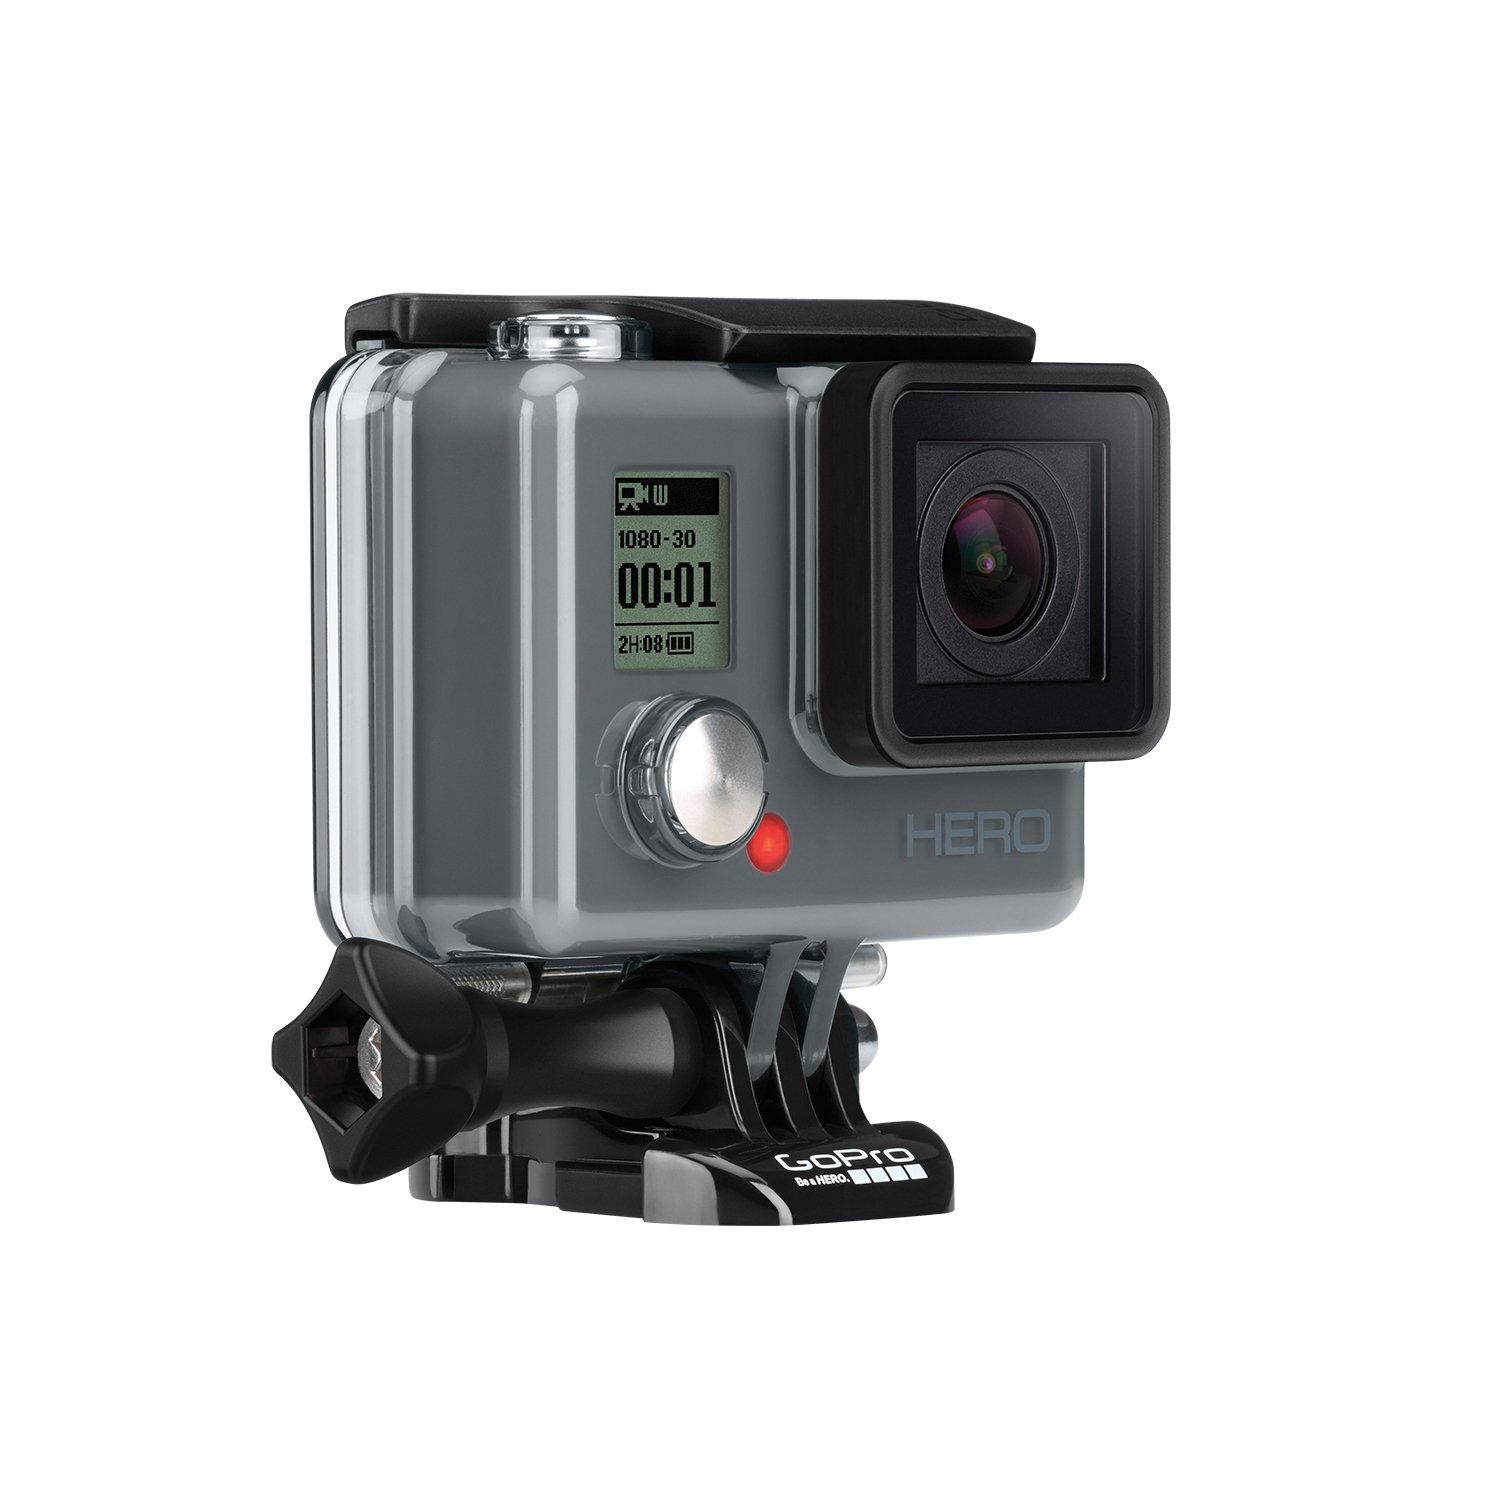 Buy GoPro Hero Action Camera Online at Low Price in India | GoPro ...